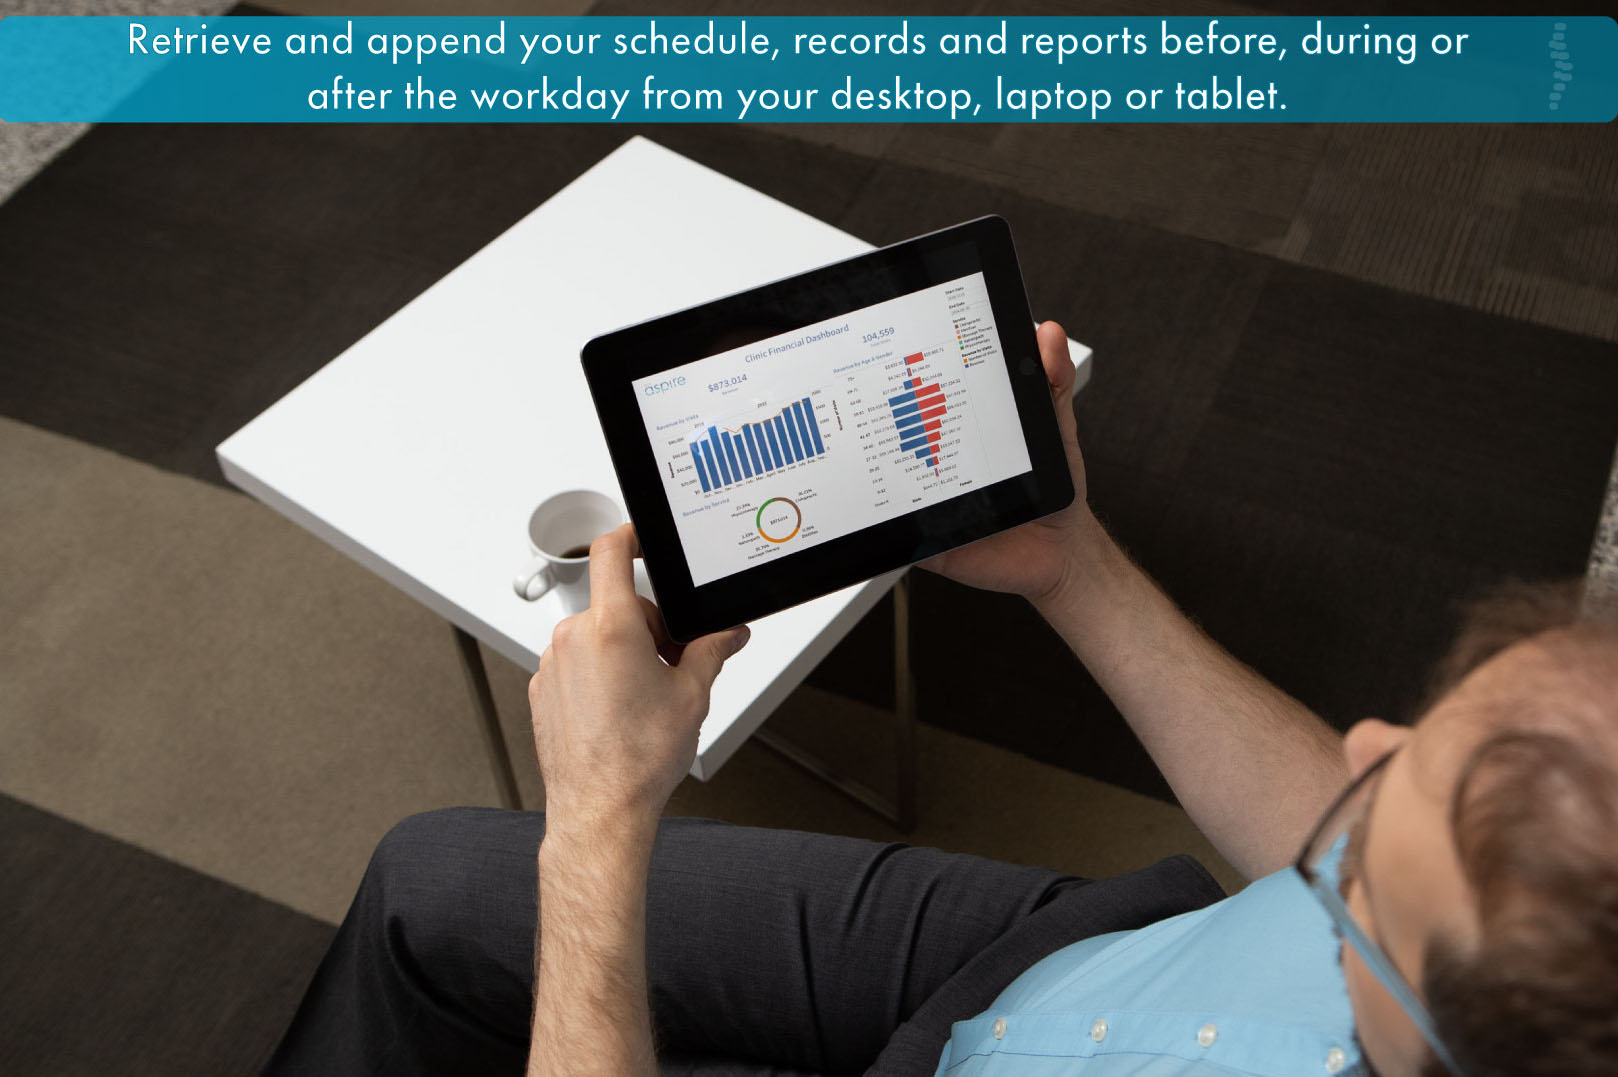 Chiropractor viewing OCA Aspire schedule on a tablet